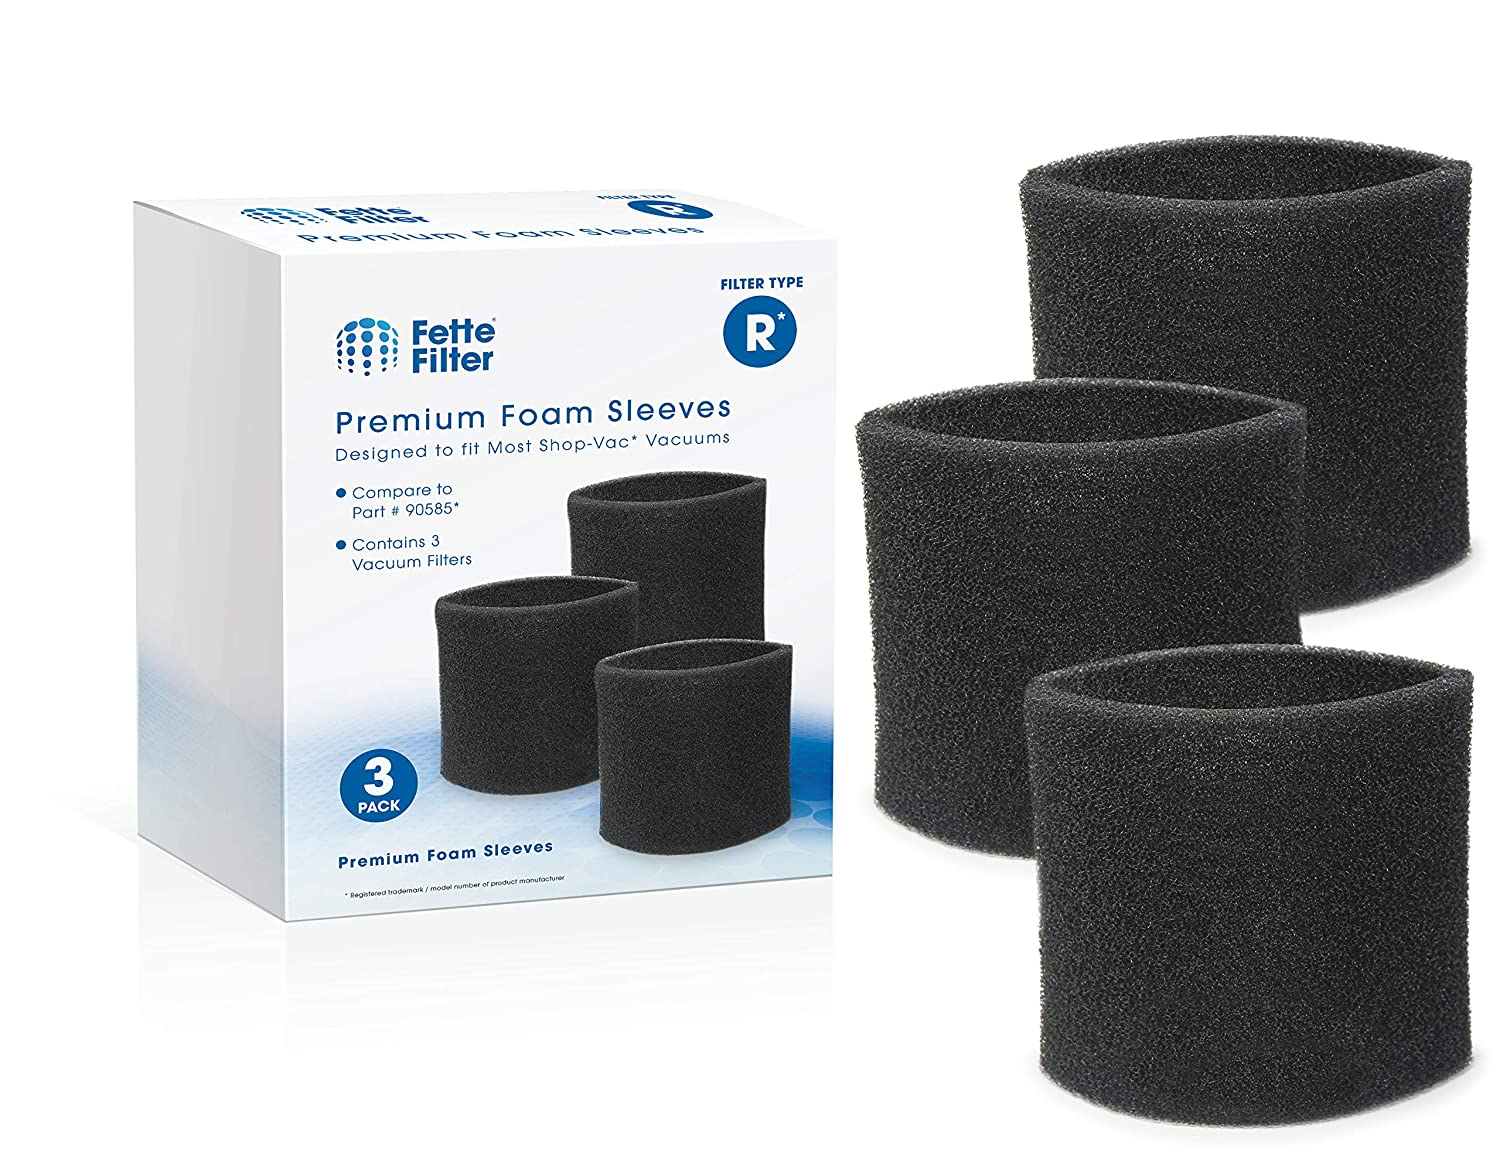 Fette Filter - Foam Sleeve Filters for 5+ Gallons Vacs Compatible with Shop-Vac 90585 & 9058500 Compatible with Most Vacmaster & Genie Shop Vacuum Cleaners Filter Type R. (Pack of 3)